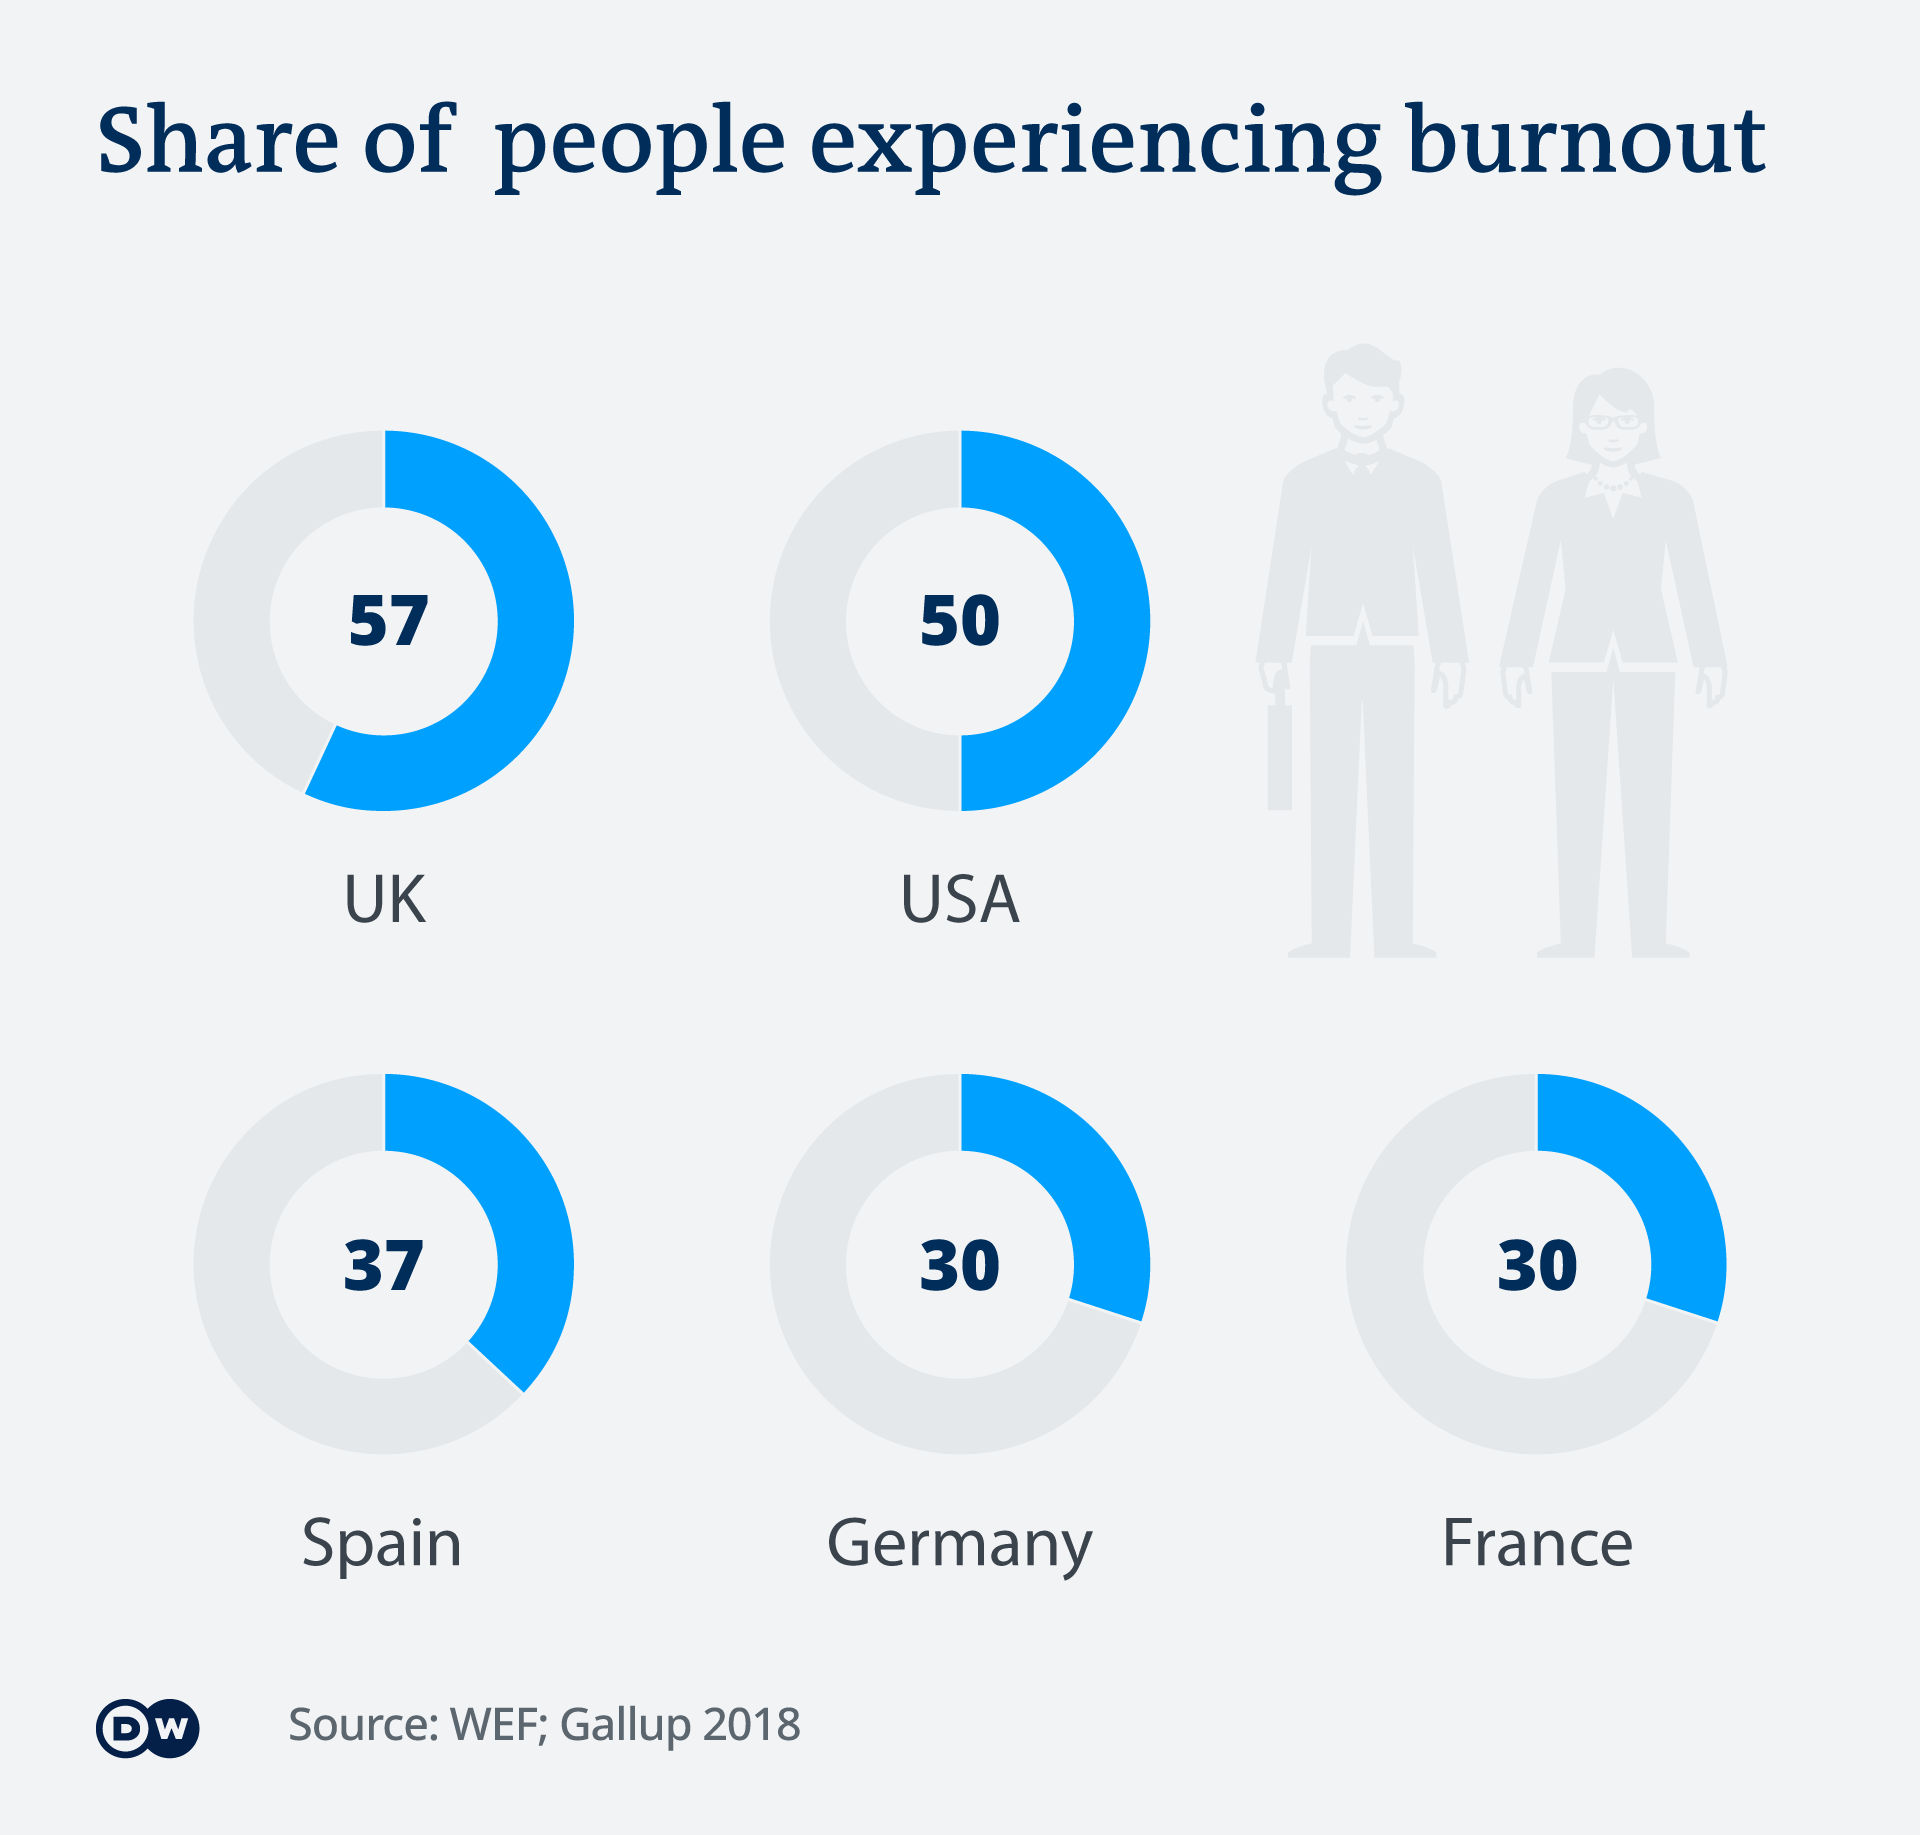 An infographic showing the share of people experiencing burnout in different countries